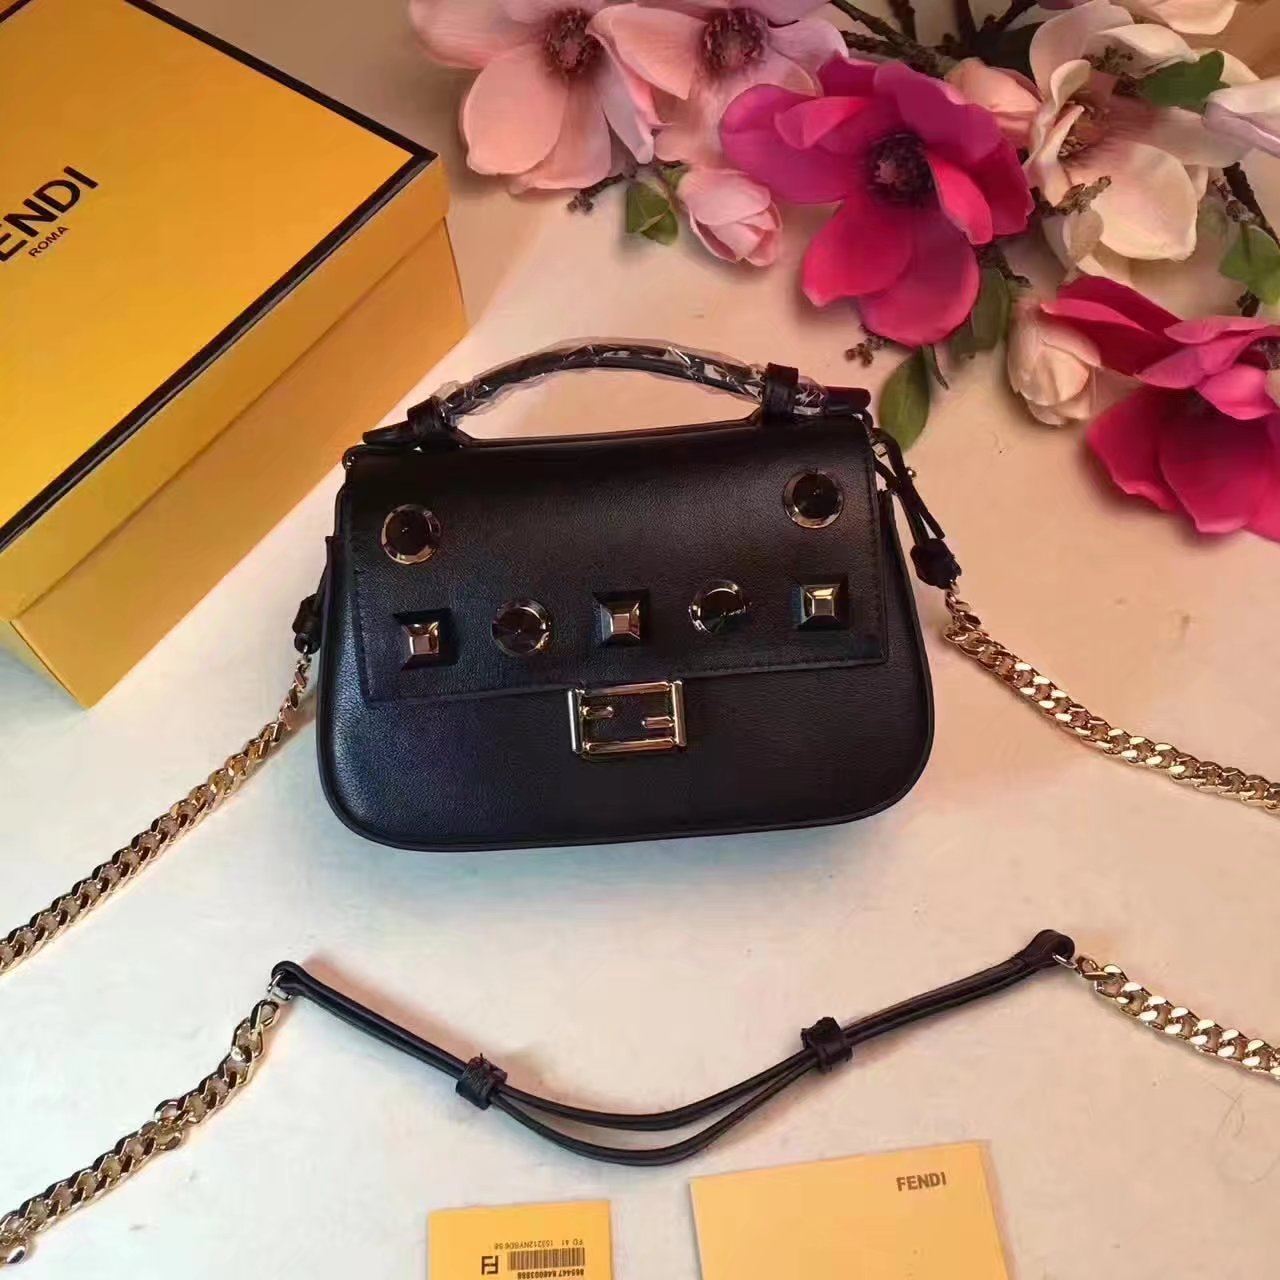 Fendi Black Leather Double Micro Baguette Microbag with Black Studs